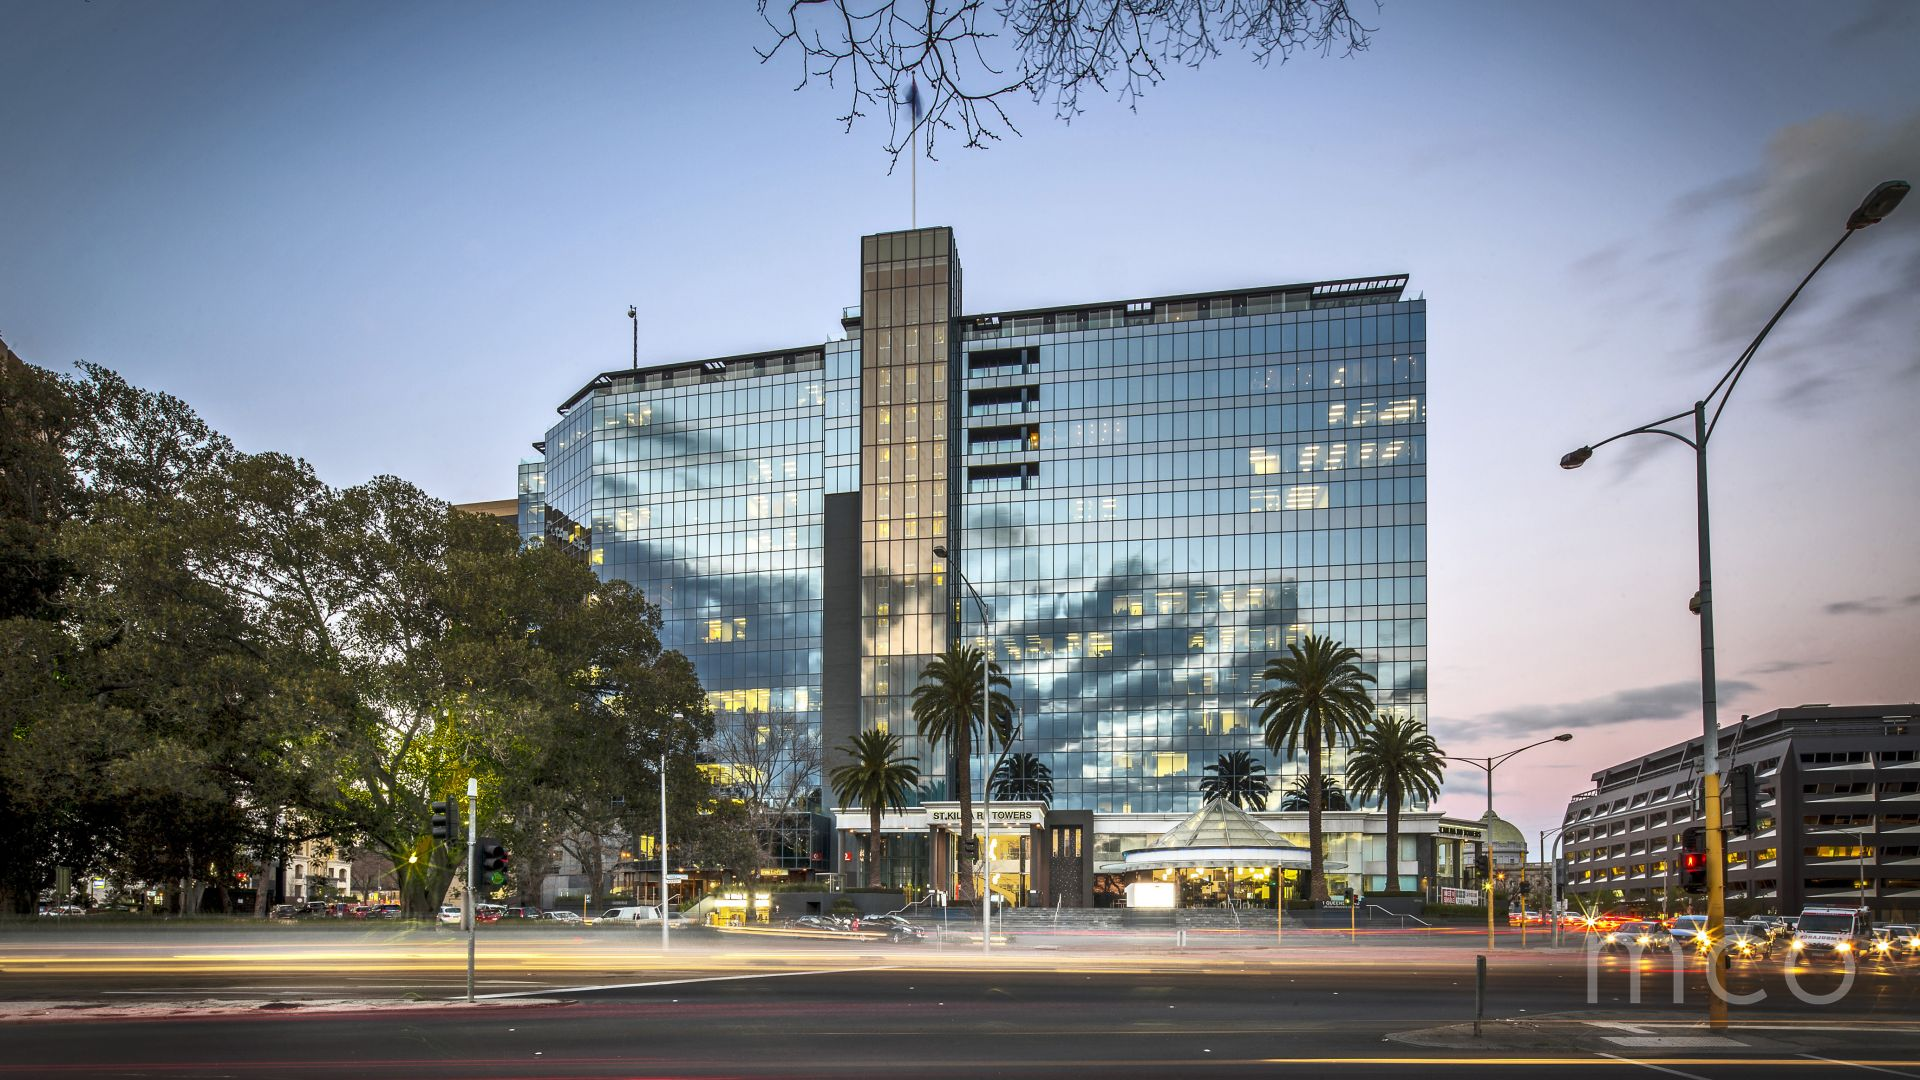 Ideal investment opportunity with an established tenant at the iconic St Kilda Rd Towers